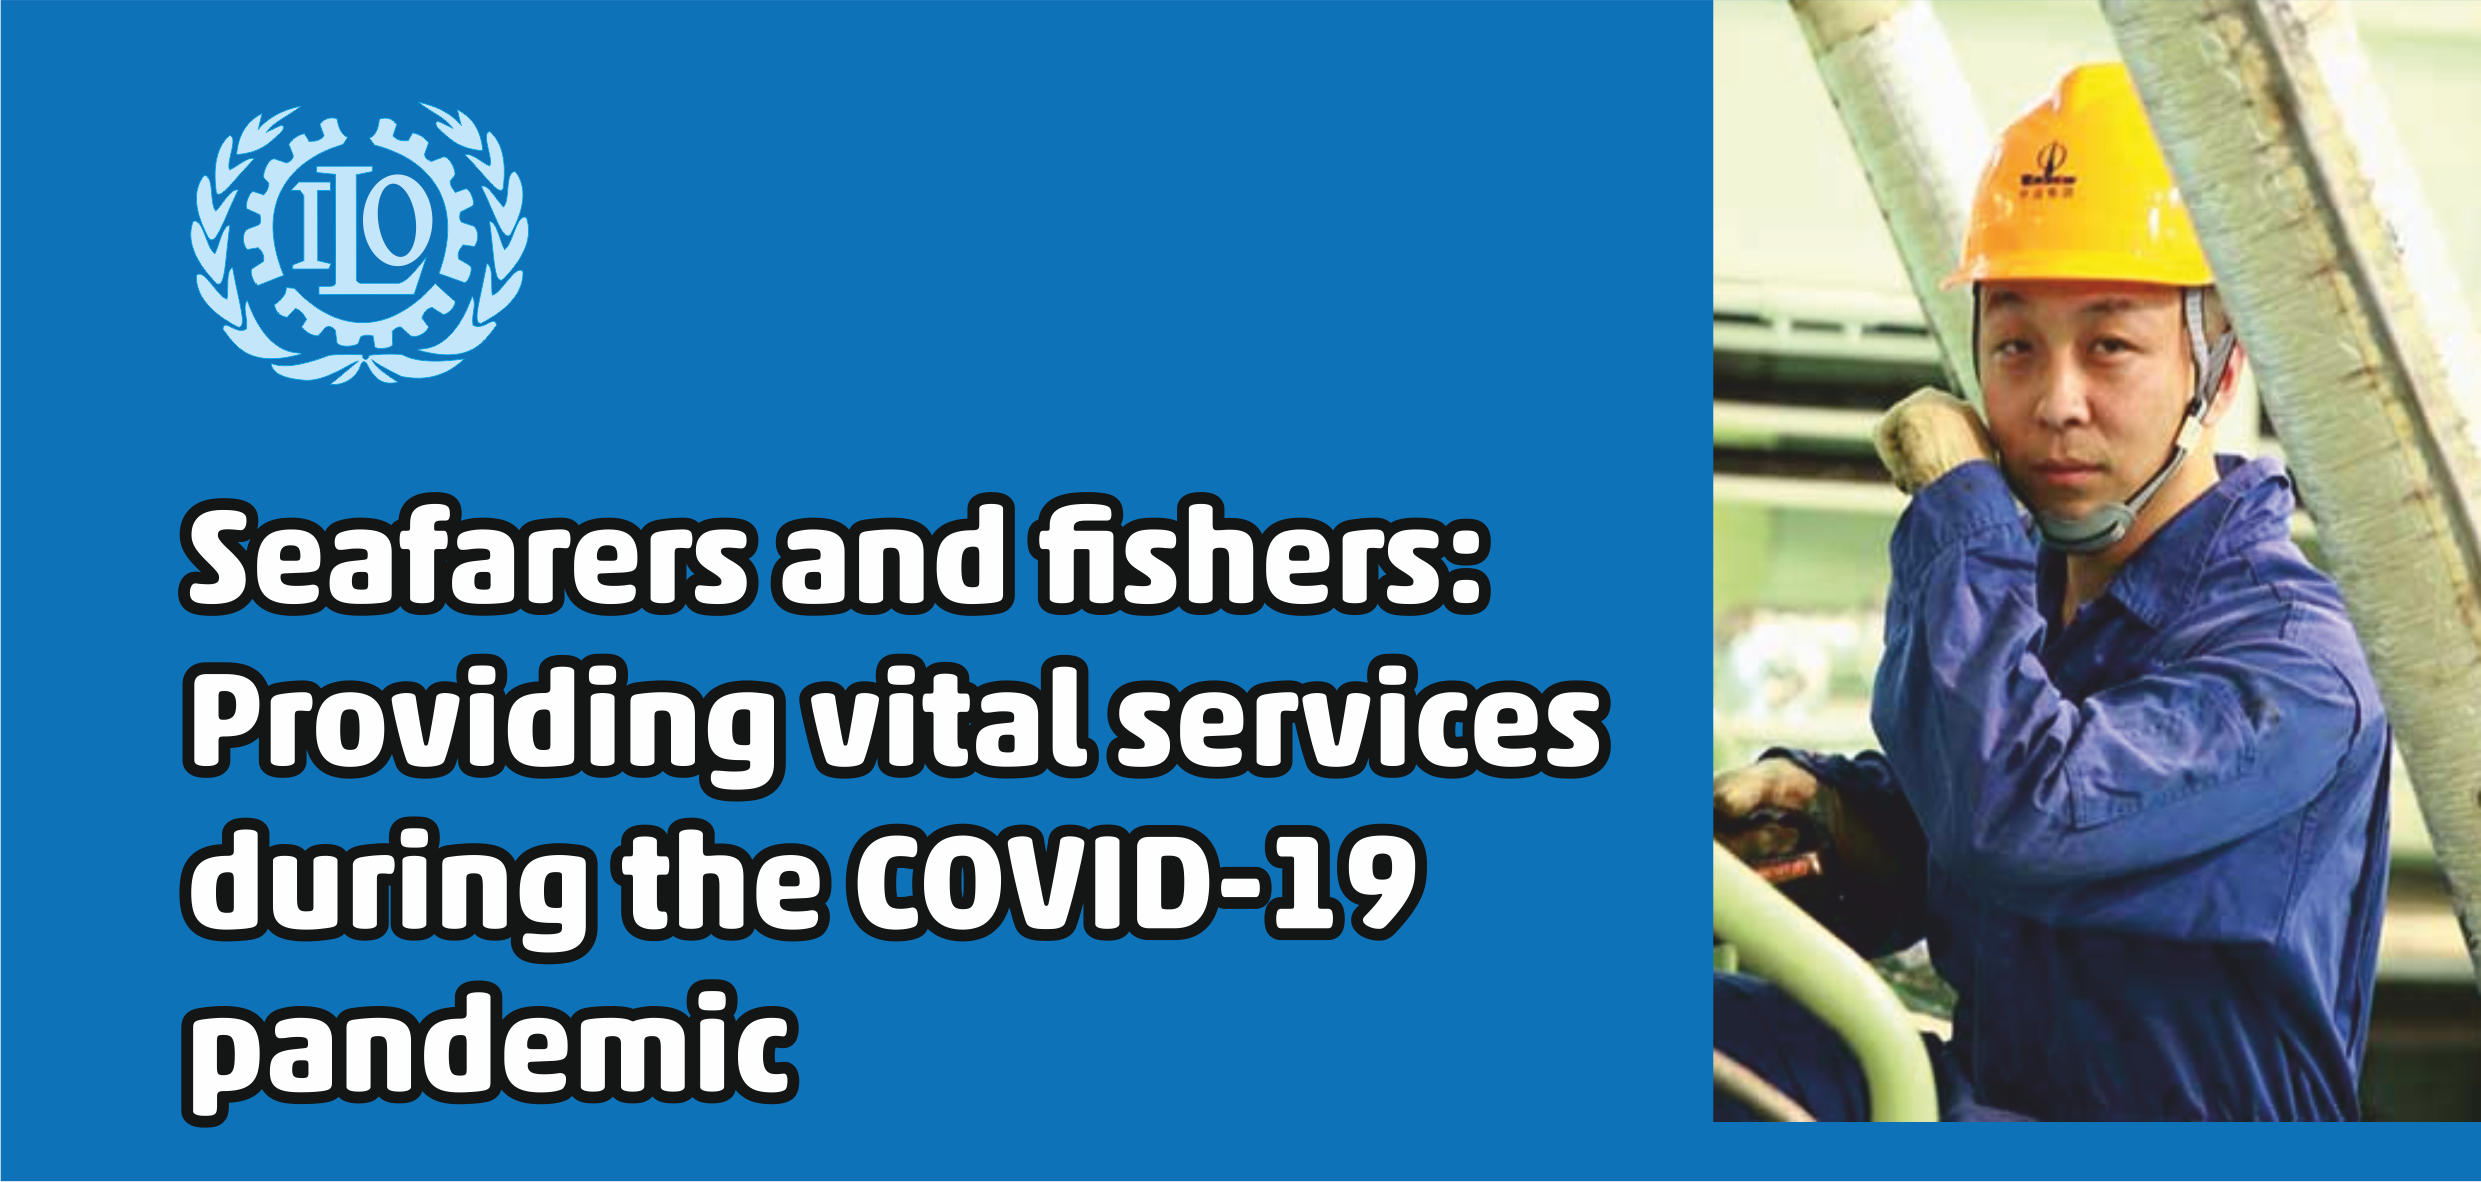 Seafarers and fishers: Providing vital services during the COVID-19 pandemic